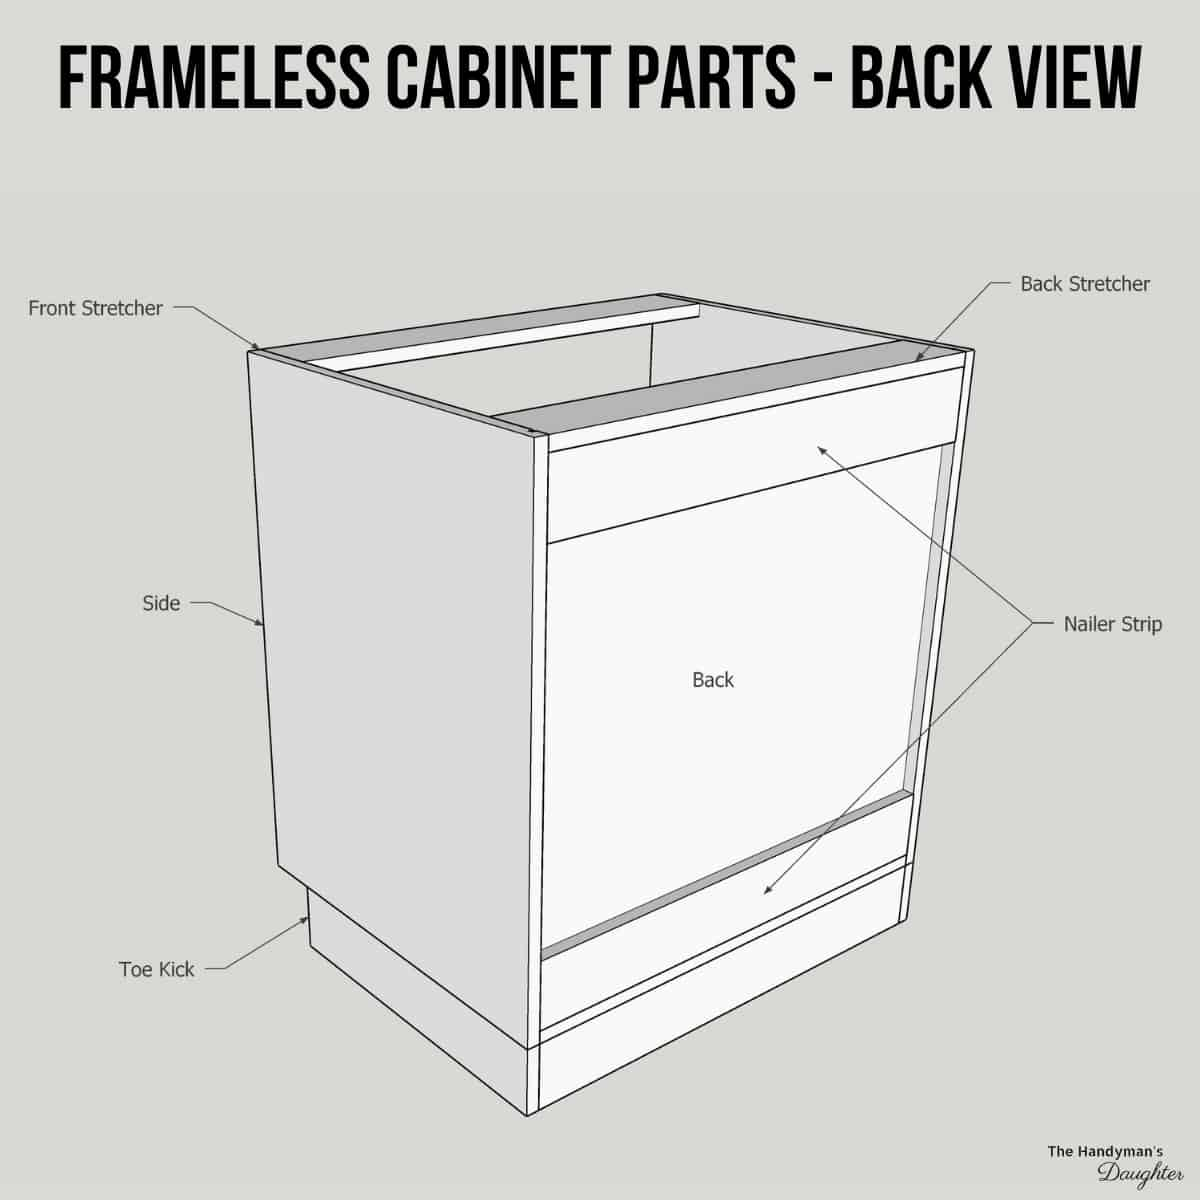 parts of a cabinet (frameless) -  back view